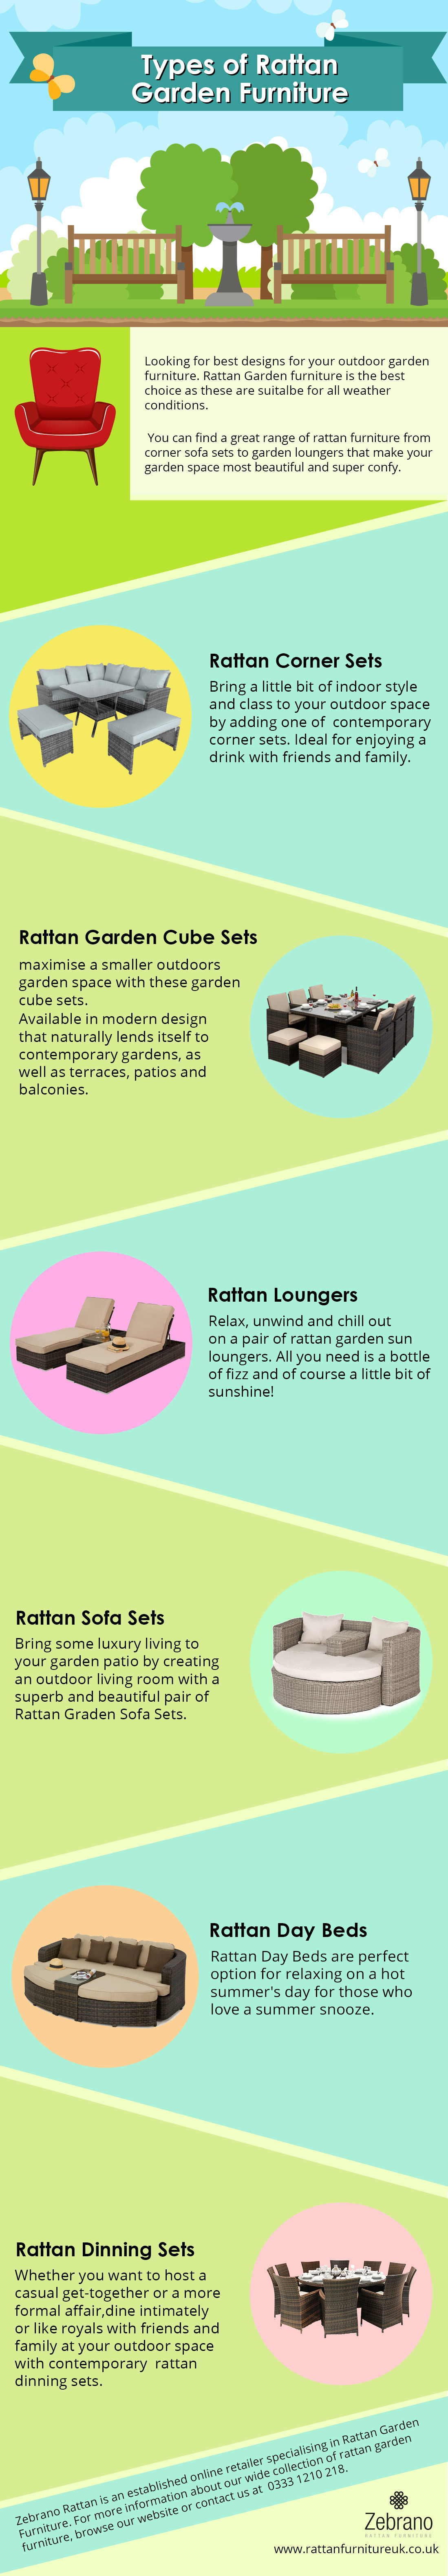 Types of Rattan Garden Furniture  Zebrano Ratt